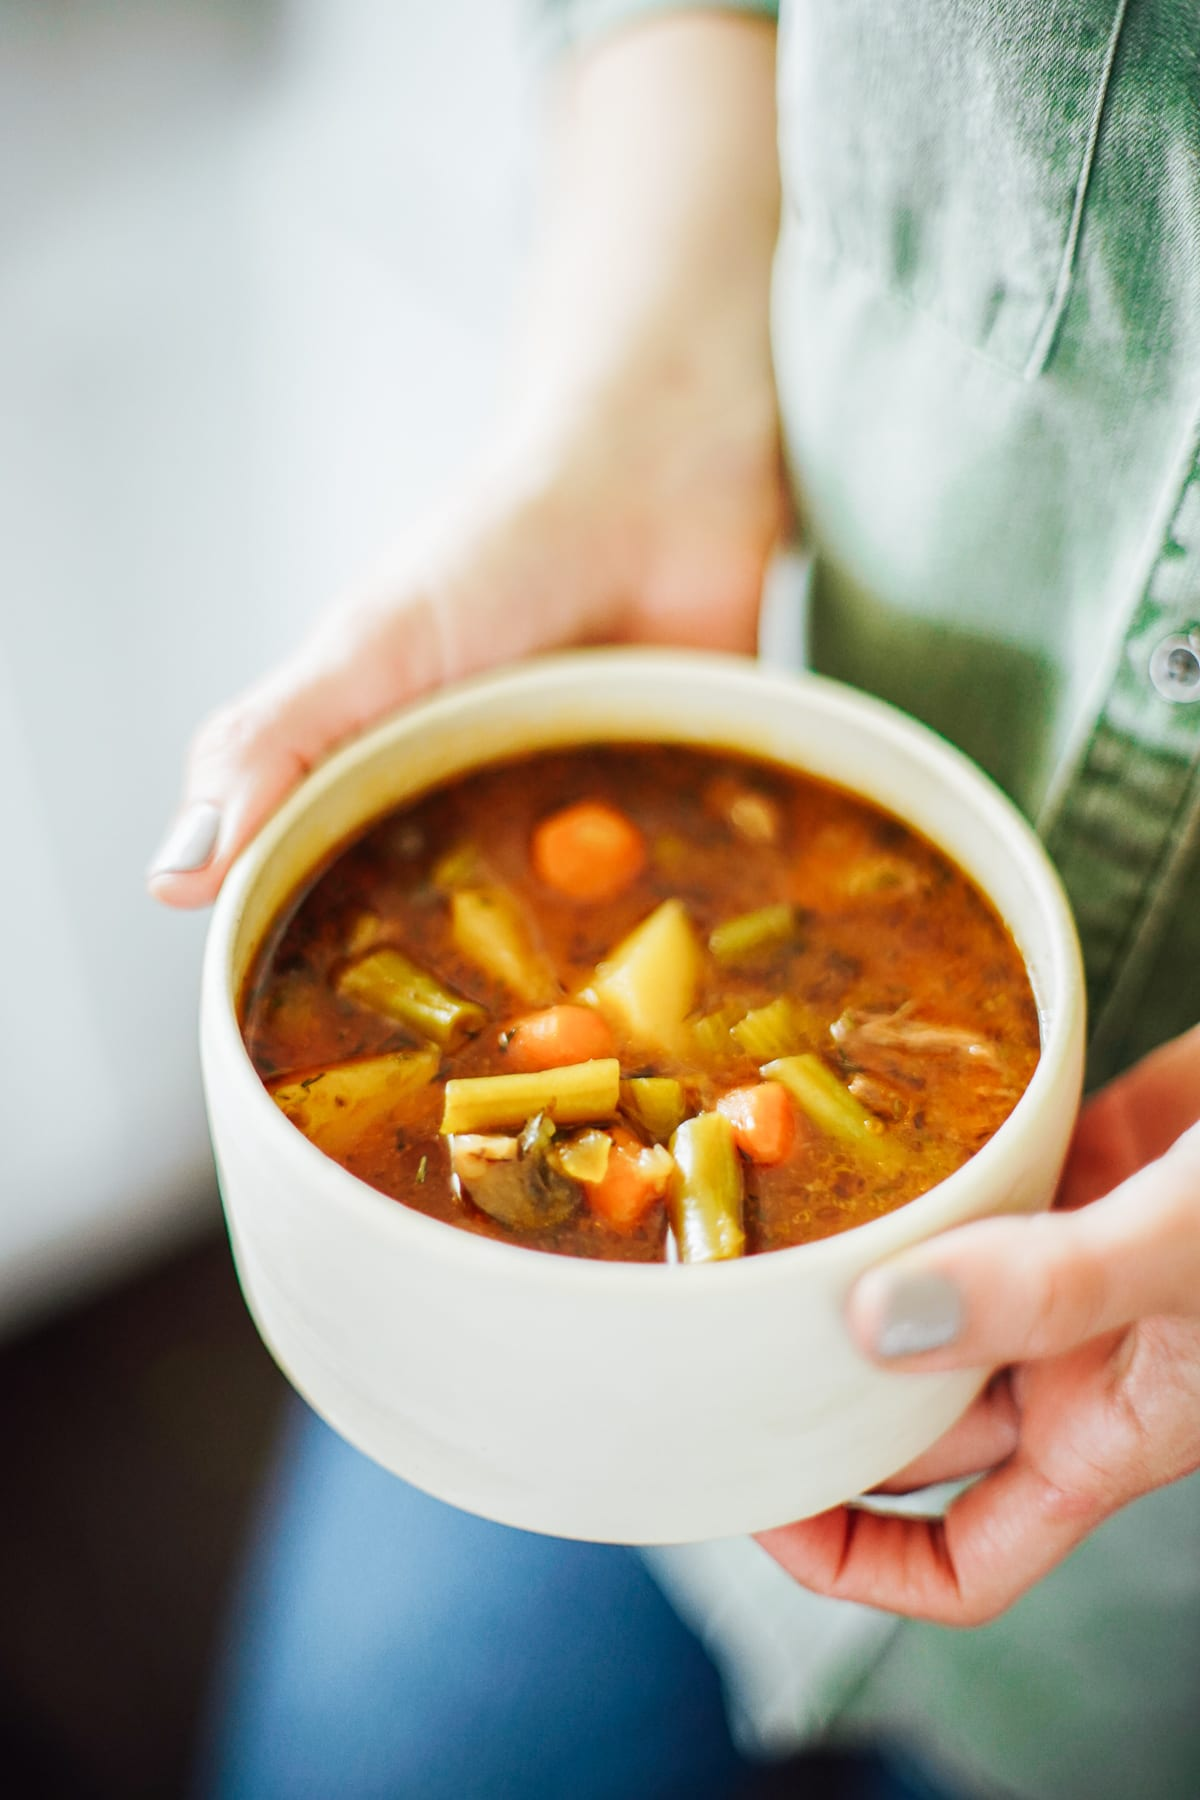 A hearty beef stew with loads of vegetables. This stew is made in the Instant Pot (or electric pressure cooker of choice).